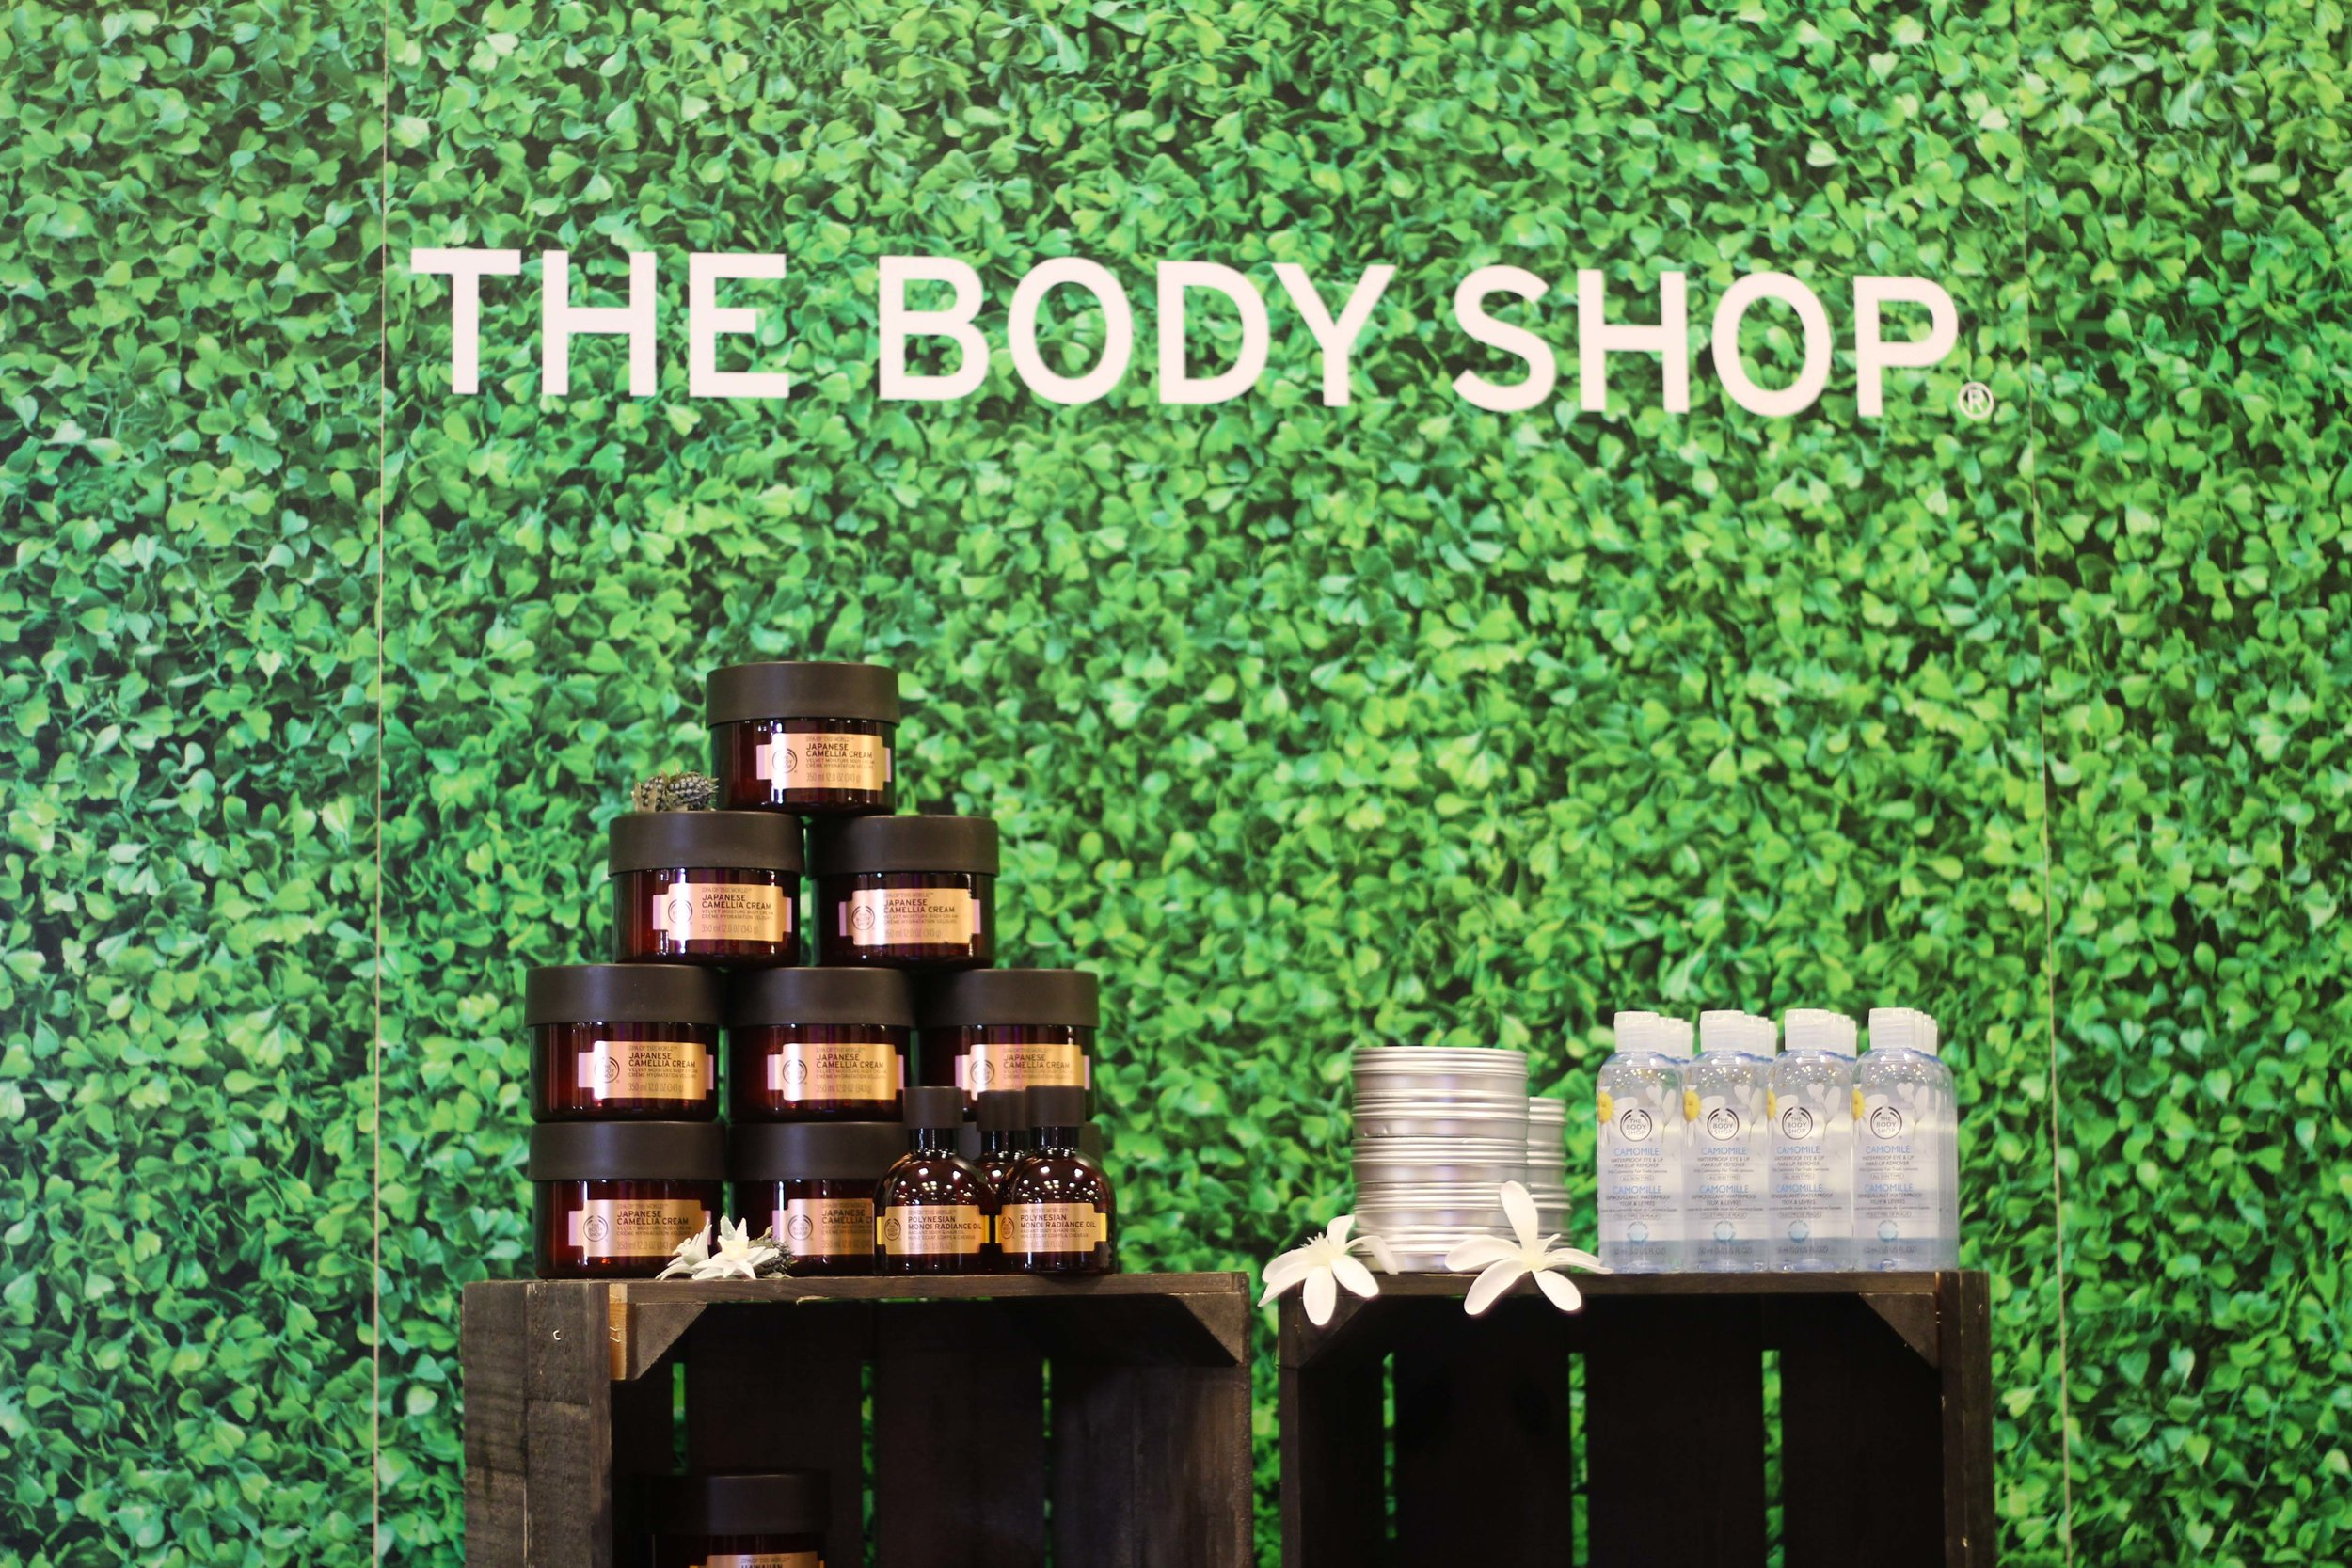 The Body Shop at The Makeup Show Dallas